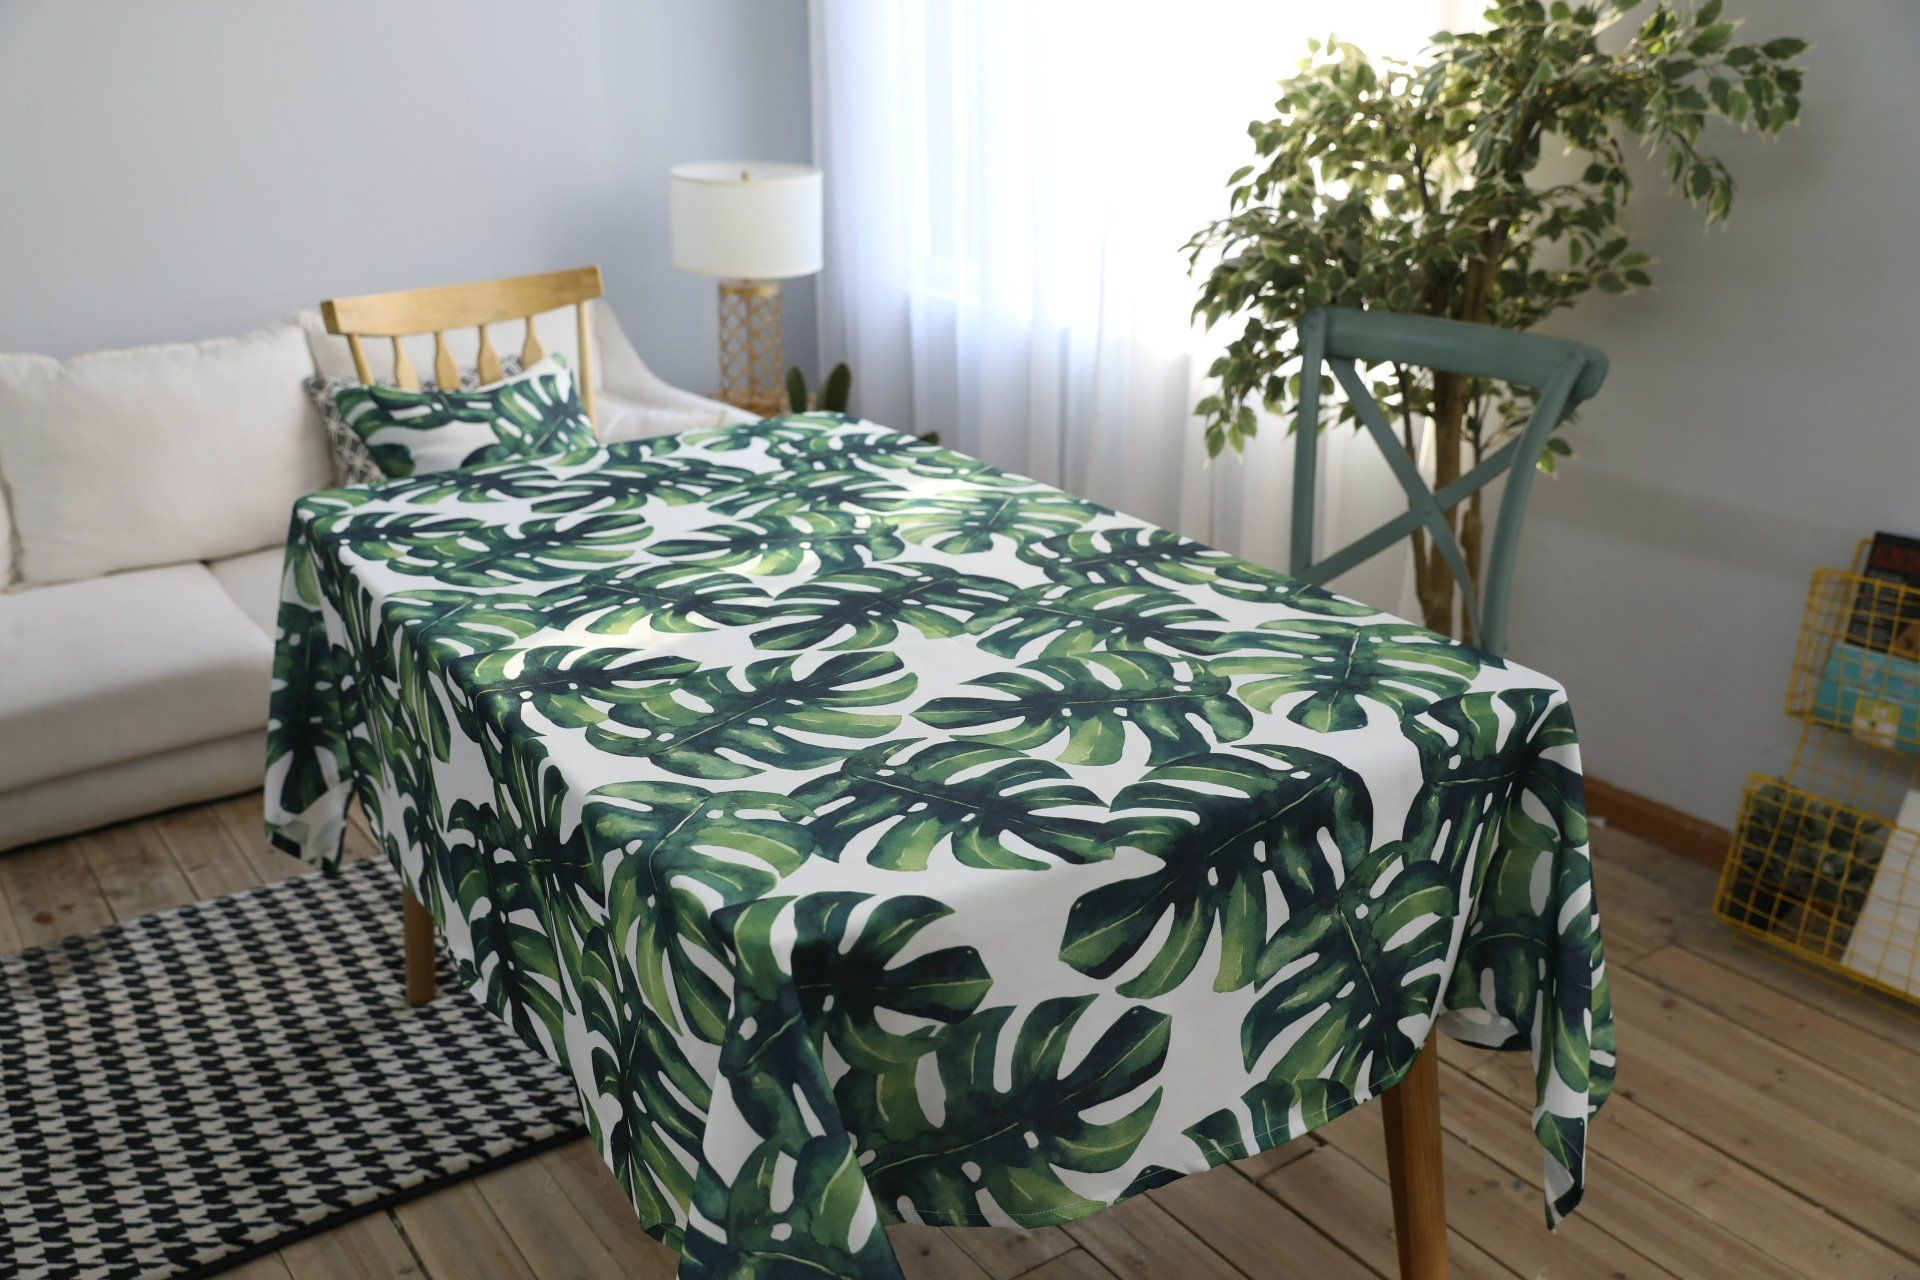 Drizzle Table Cloth Monstera Leaf Plant Palm Tree